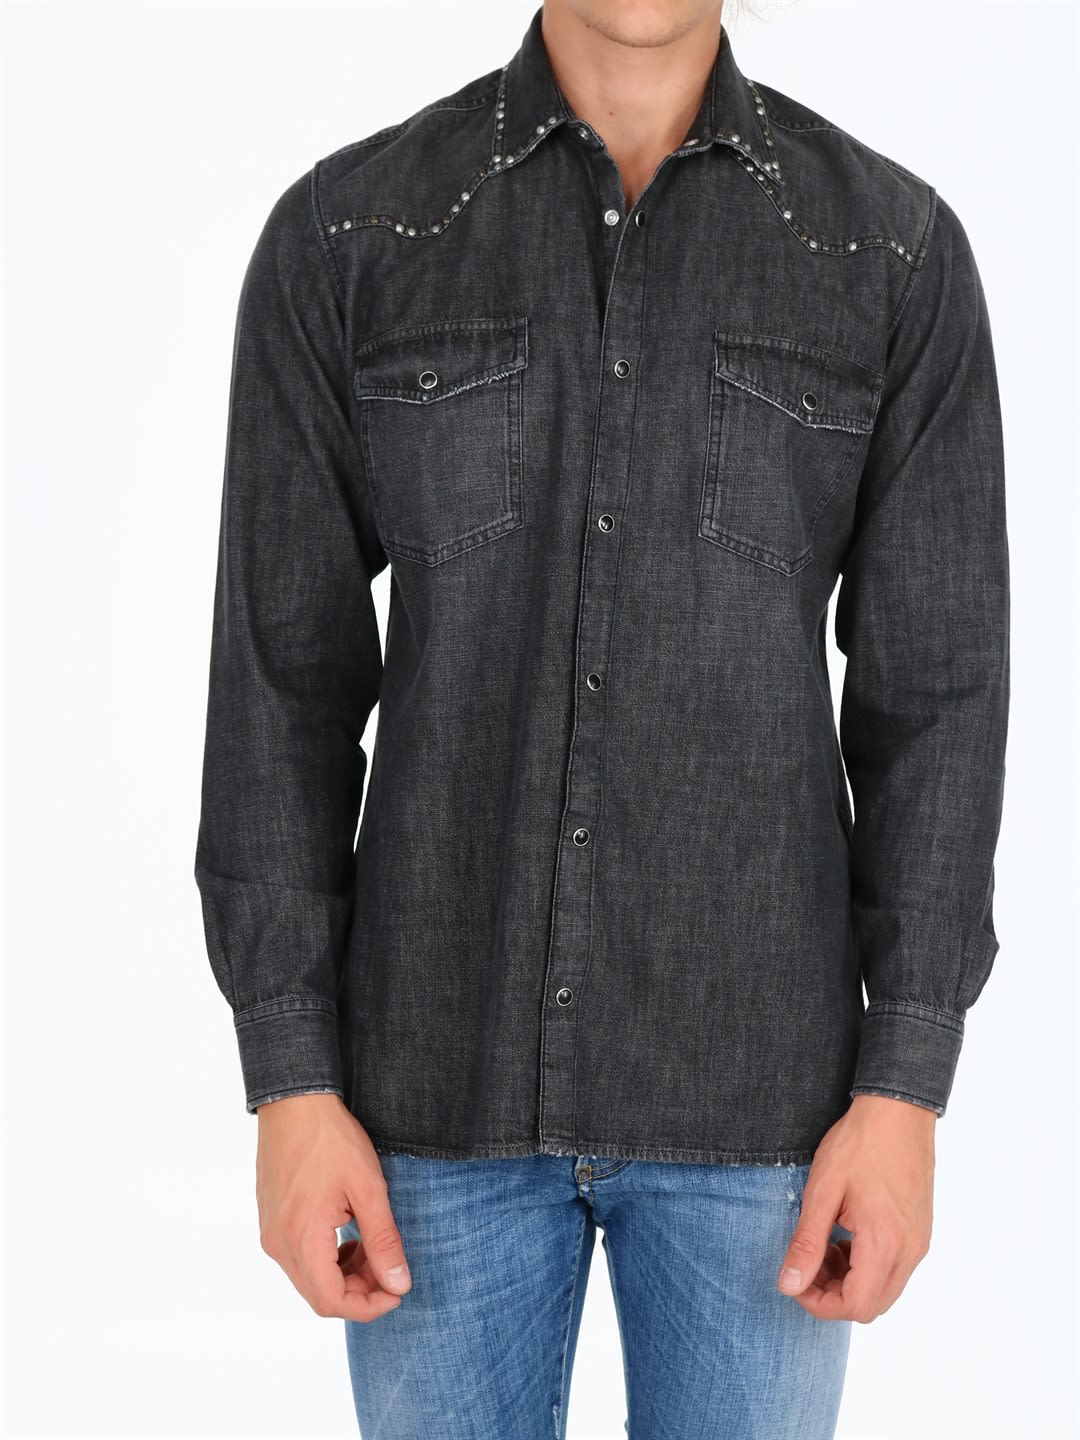 Western-style black denim shirt with studs along the collar and shoulders. Front closure and chest pockets with press studs. The model is 1. 90 cm tall and wears size LComposition: 100% Cotton